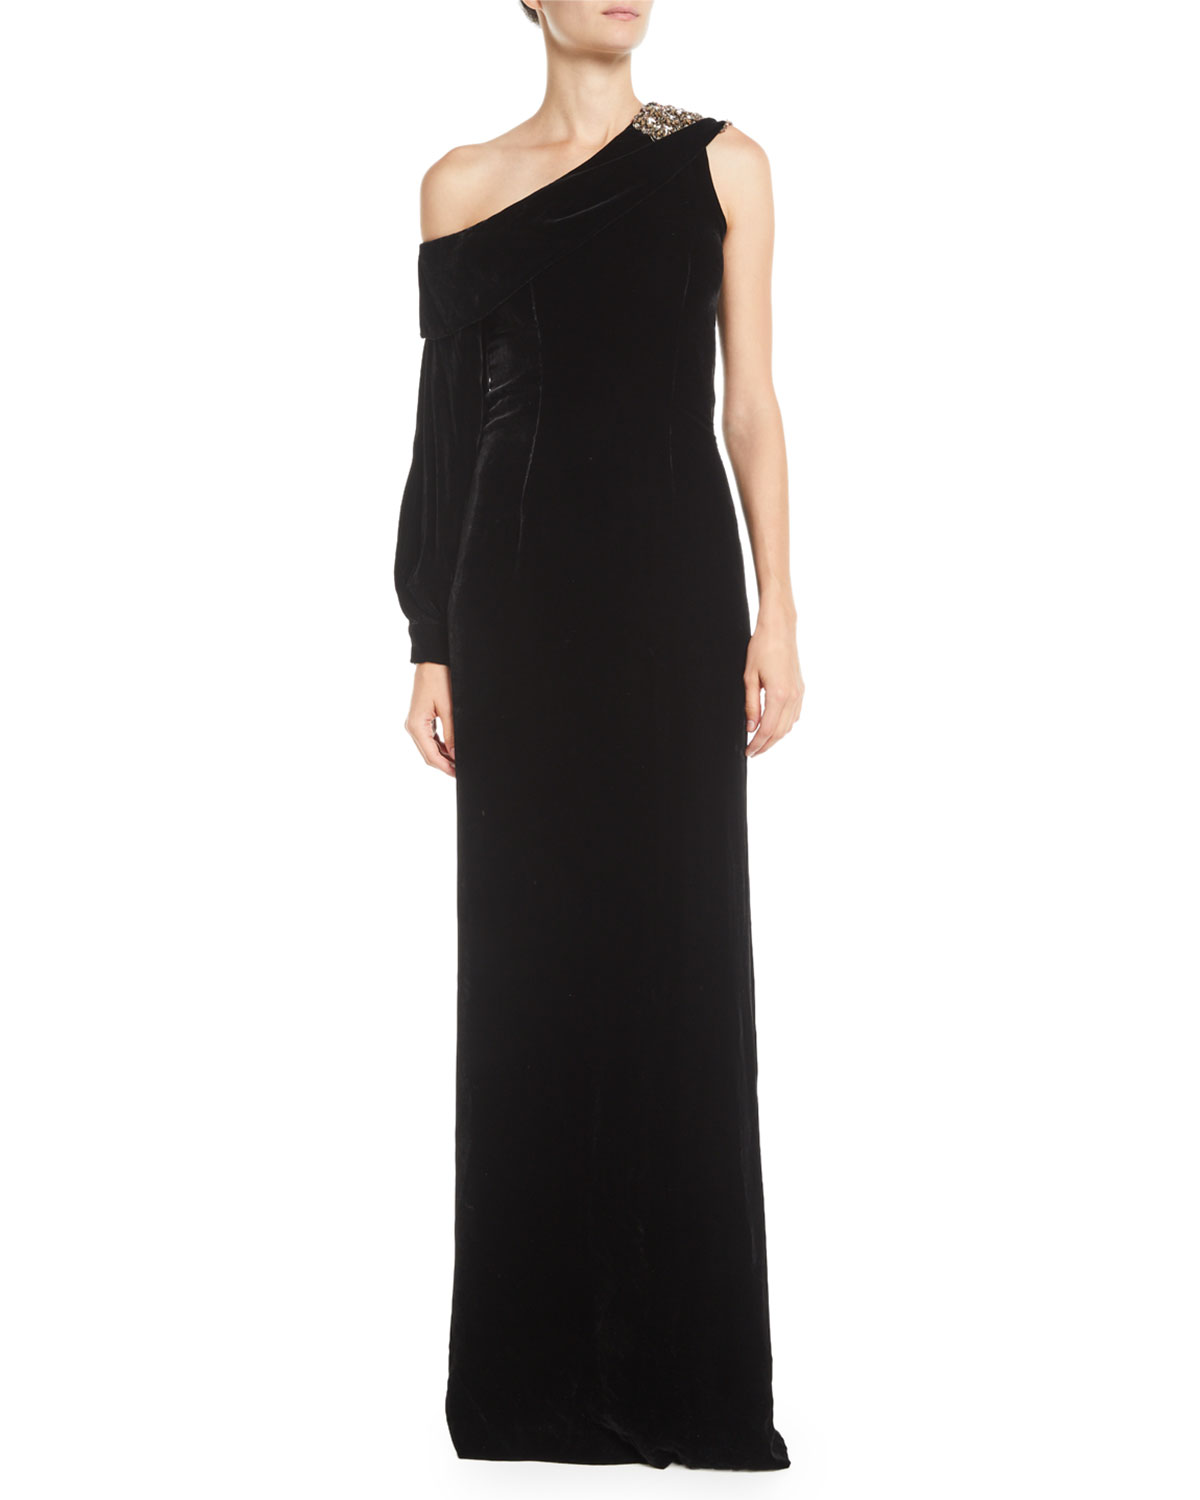 08620e07c4 Austine Velvet One-Shoulder Gown w/ Brooch